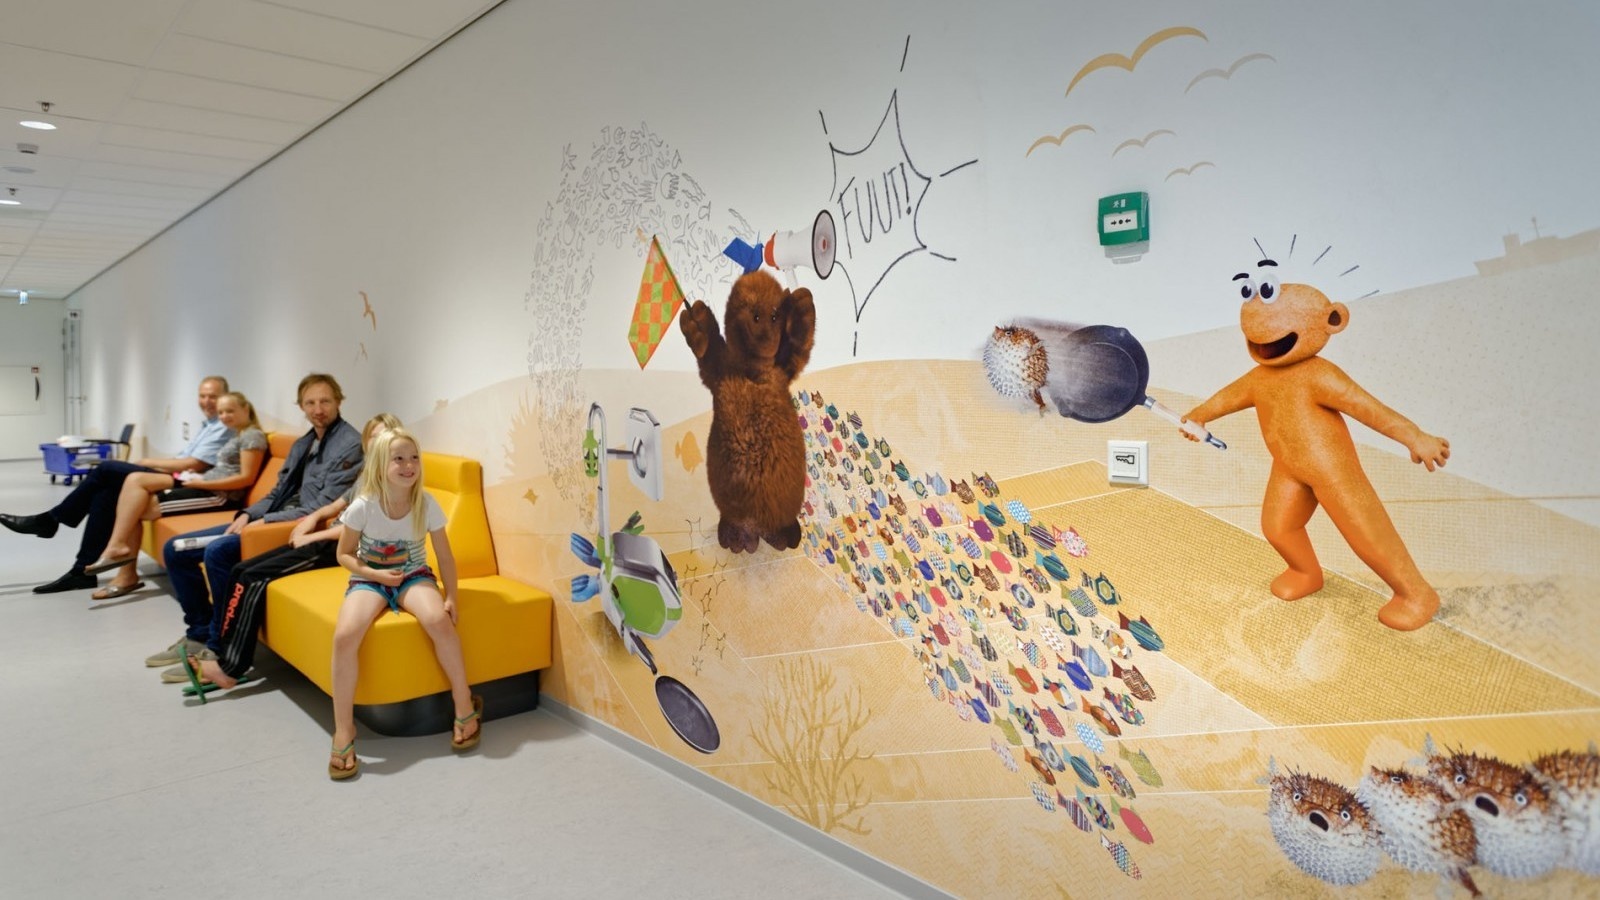 Experience Juliana children's hospital | Ontwerp: Tinker Imagineers